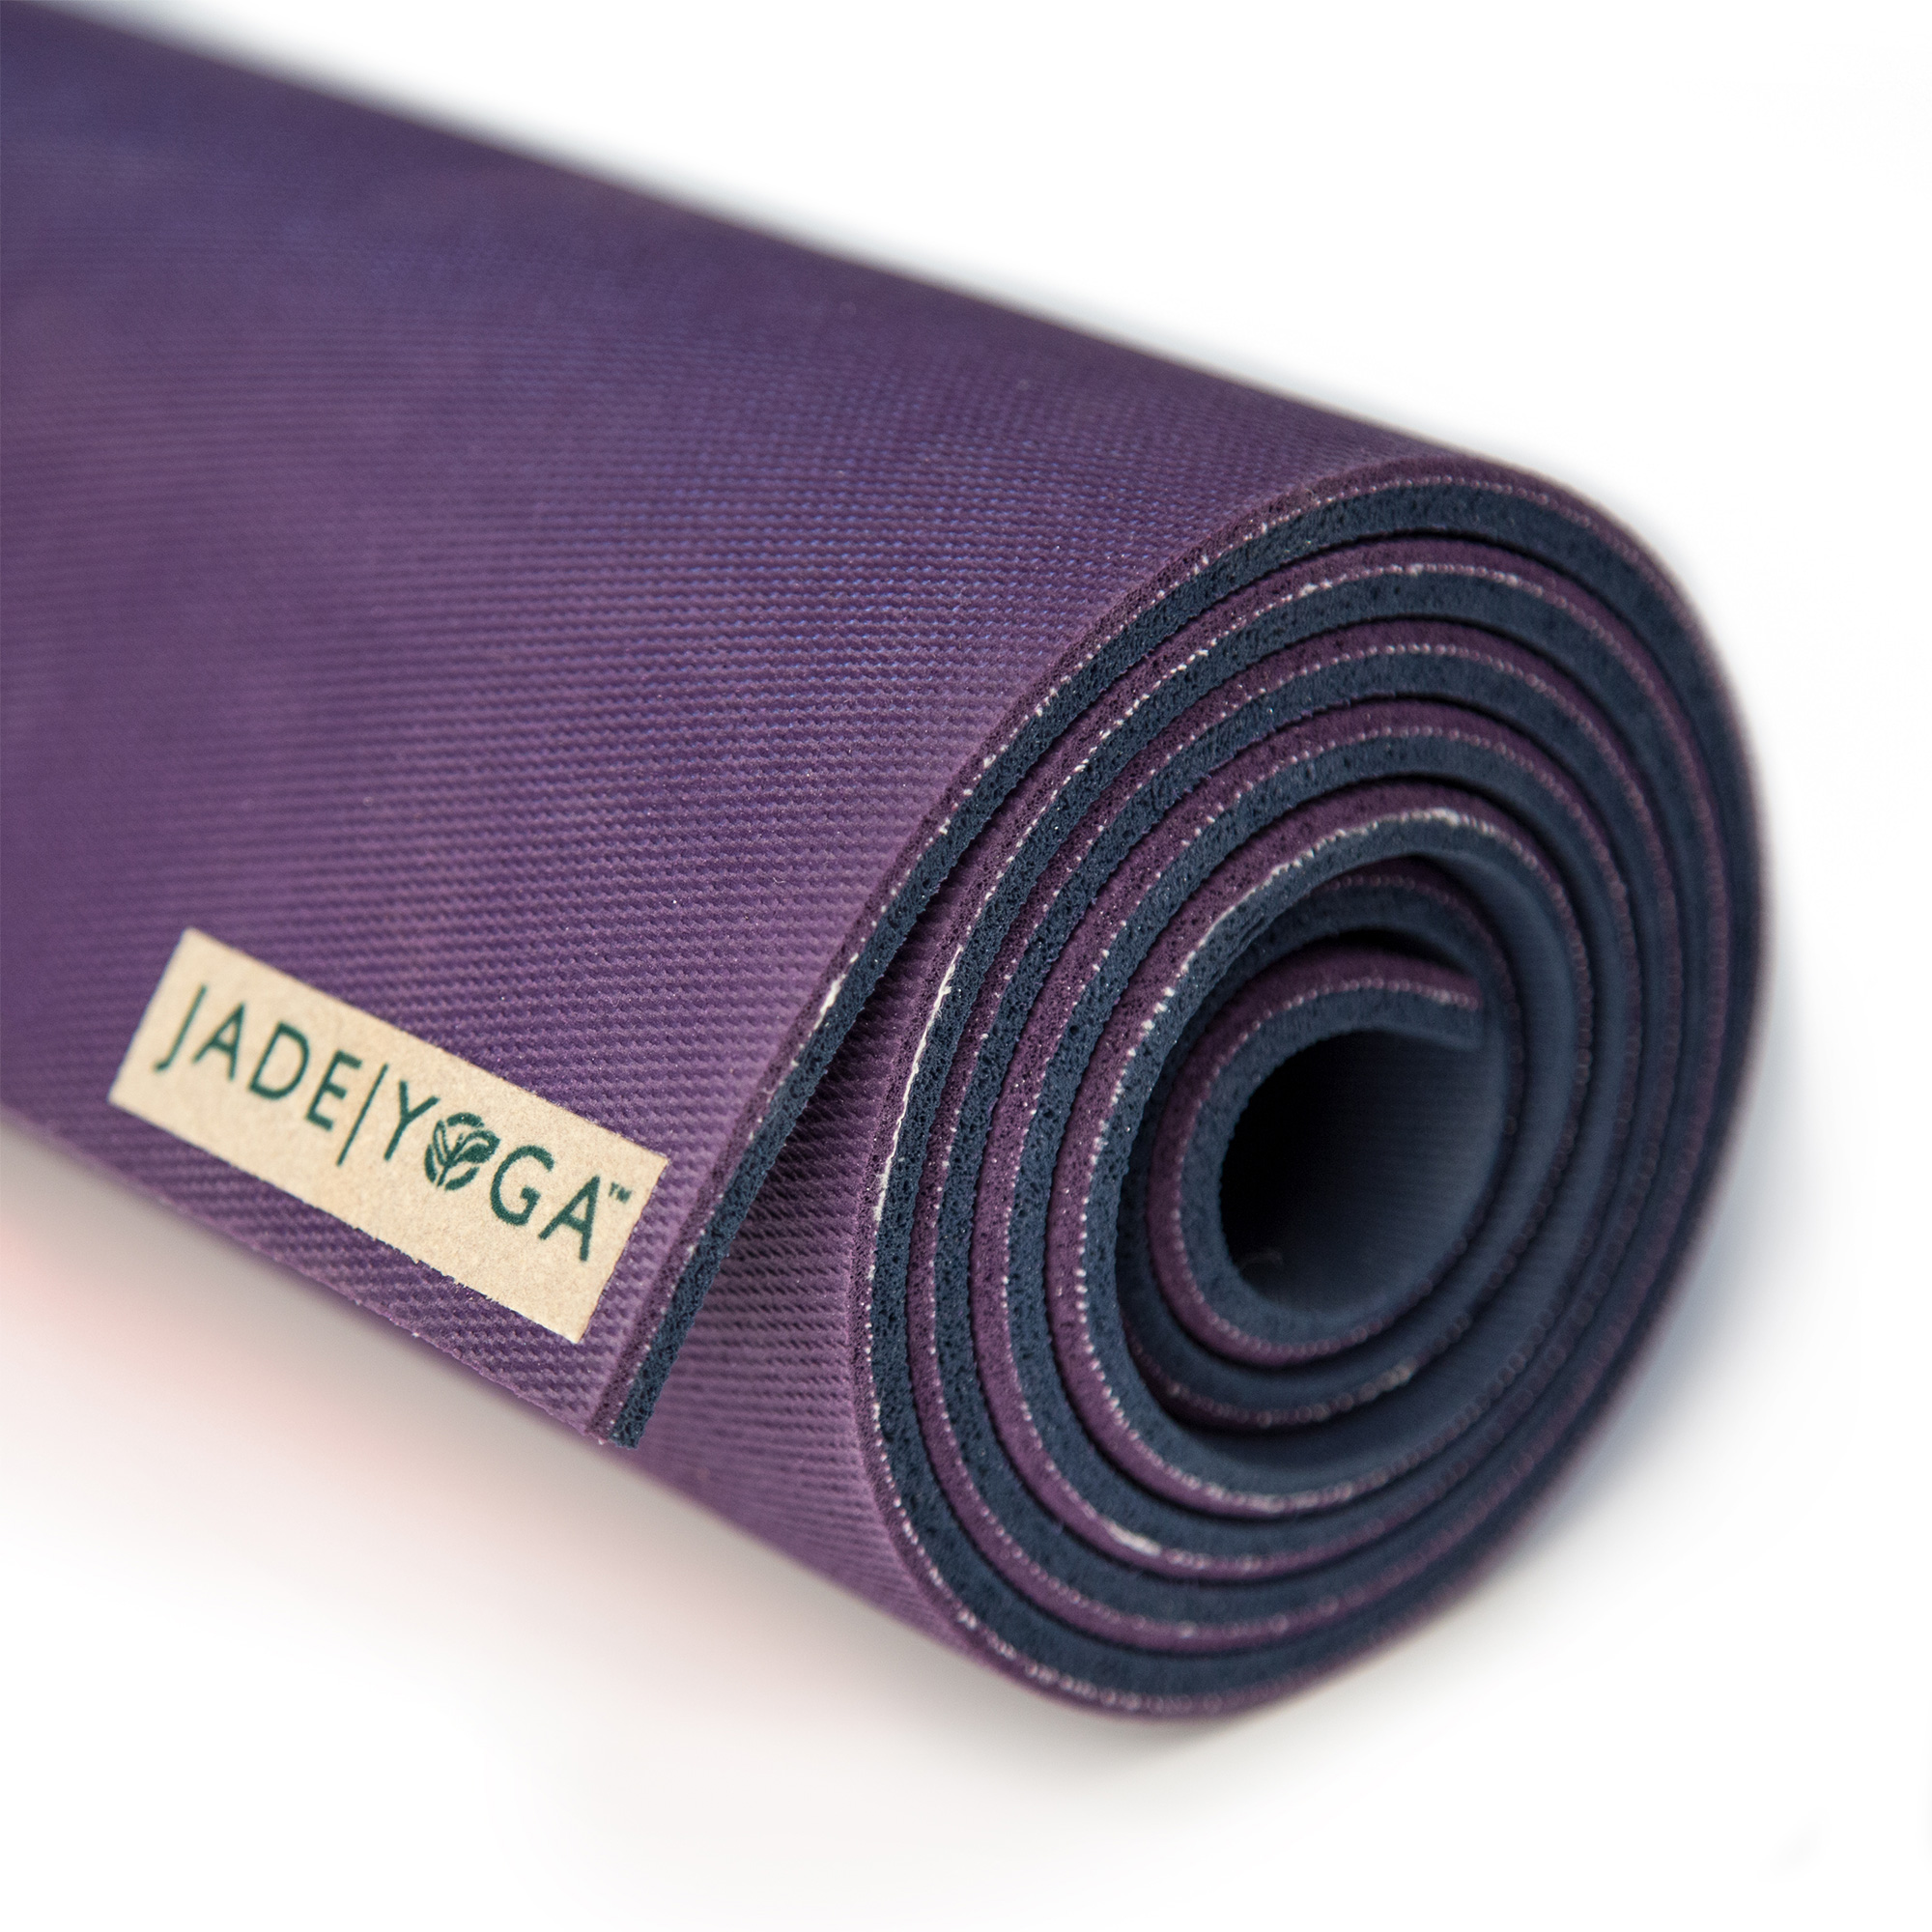 jade prev fusion yoga thickness shop jadeyoga canada mat